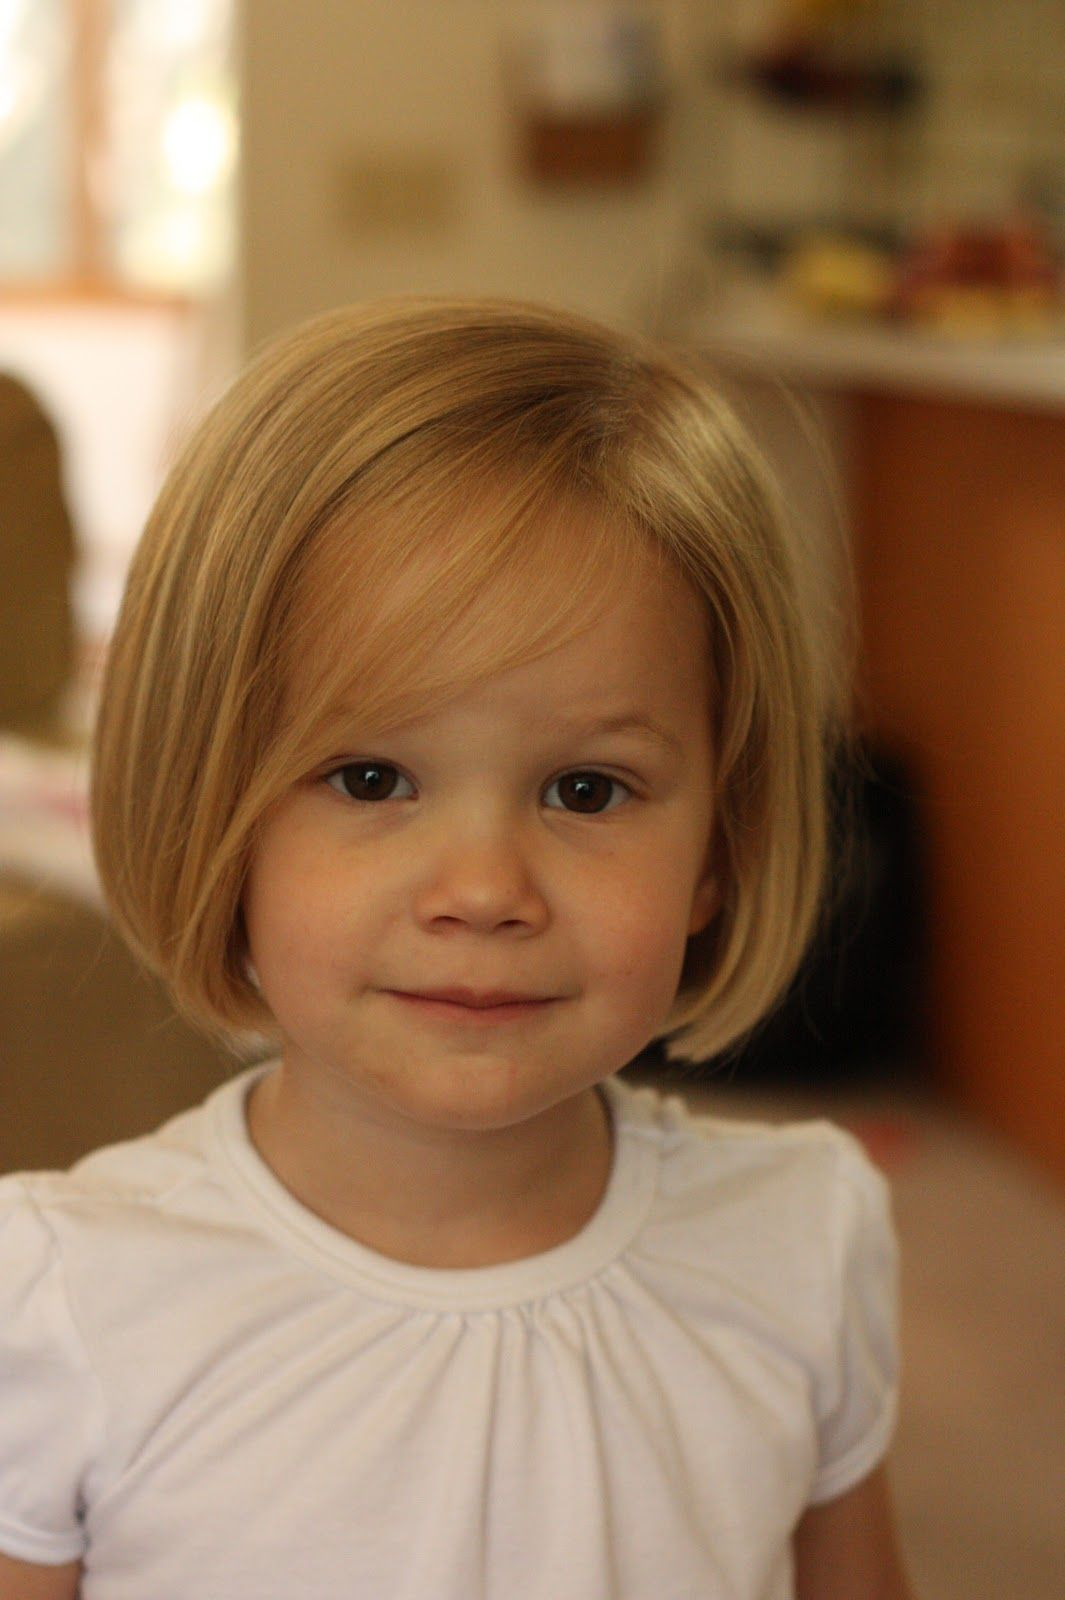 Kids hairstyles for short hair girls - Kid Hairstyles Cute Toddler Bob If She Ever Cuts Her Own Hair And We Are